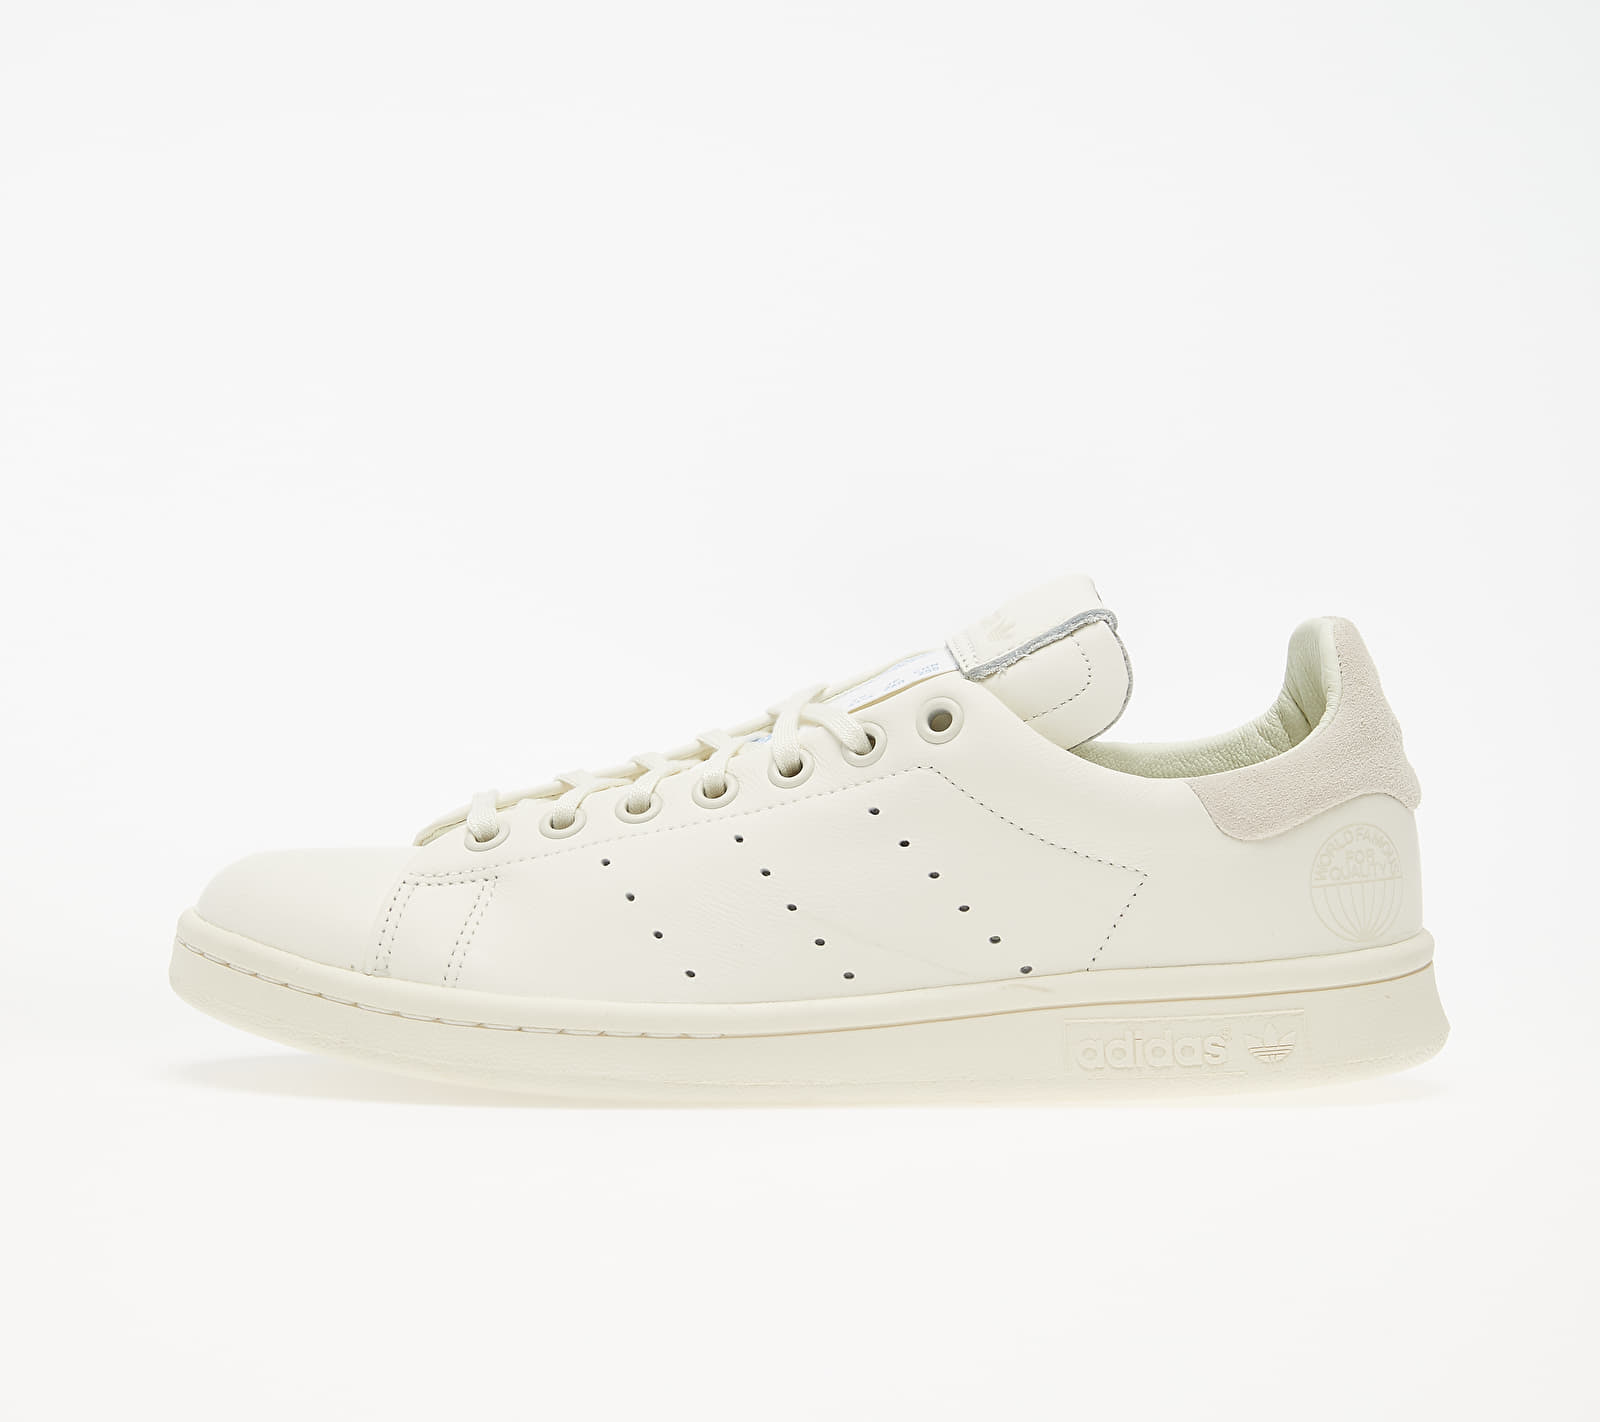 adidas Stan Smith Recon Off White/ Off White/ Off White EUR 41 1/3